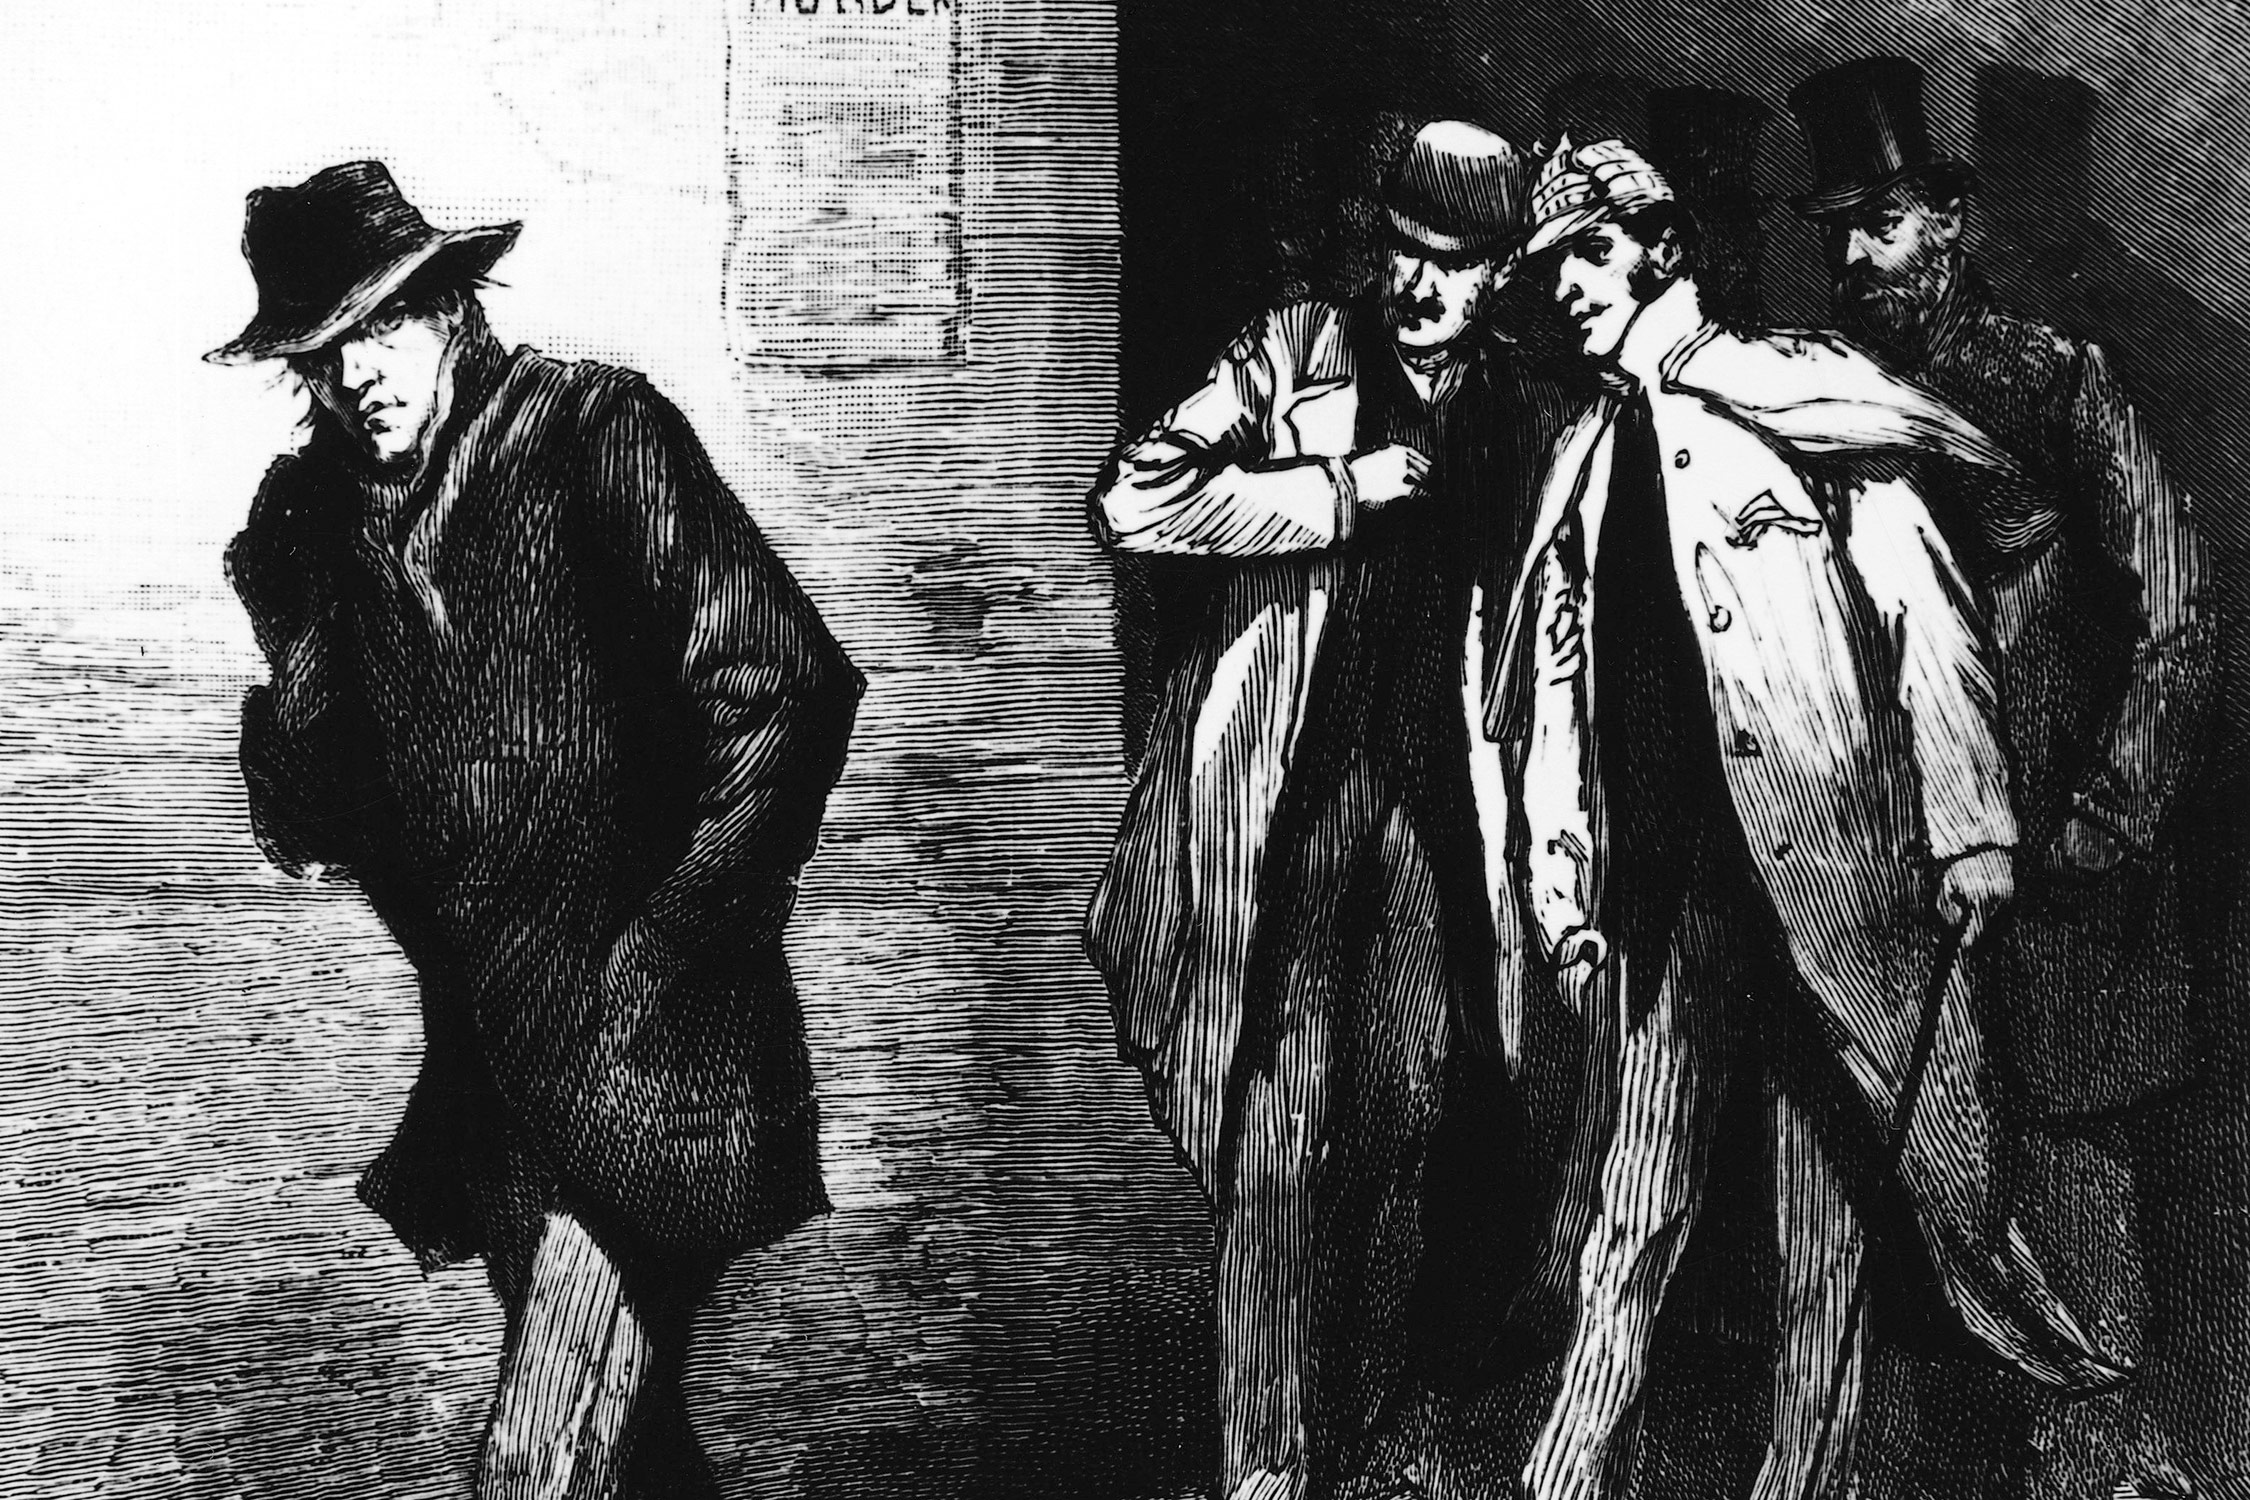 Jack the Ripper May Finally Have Been Identified, Says New Study